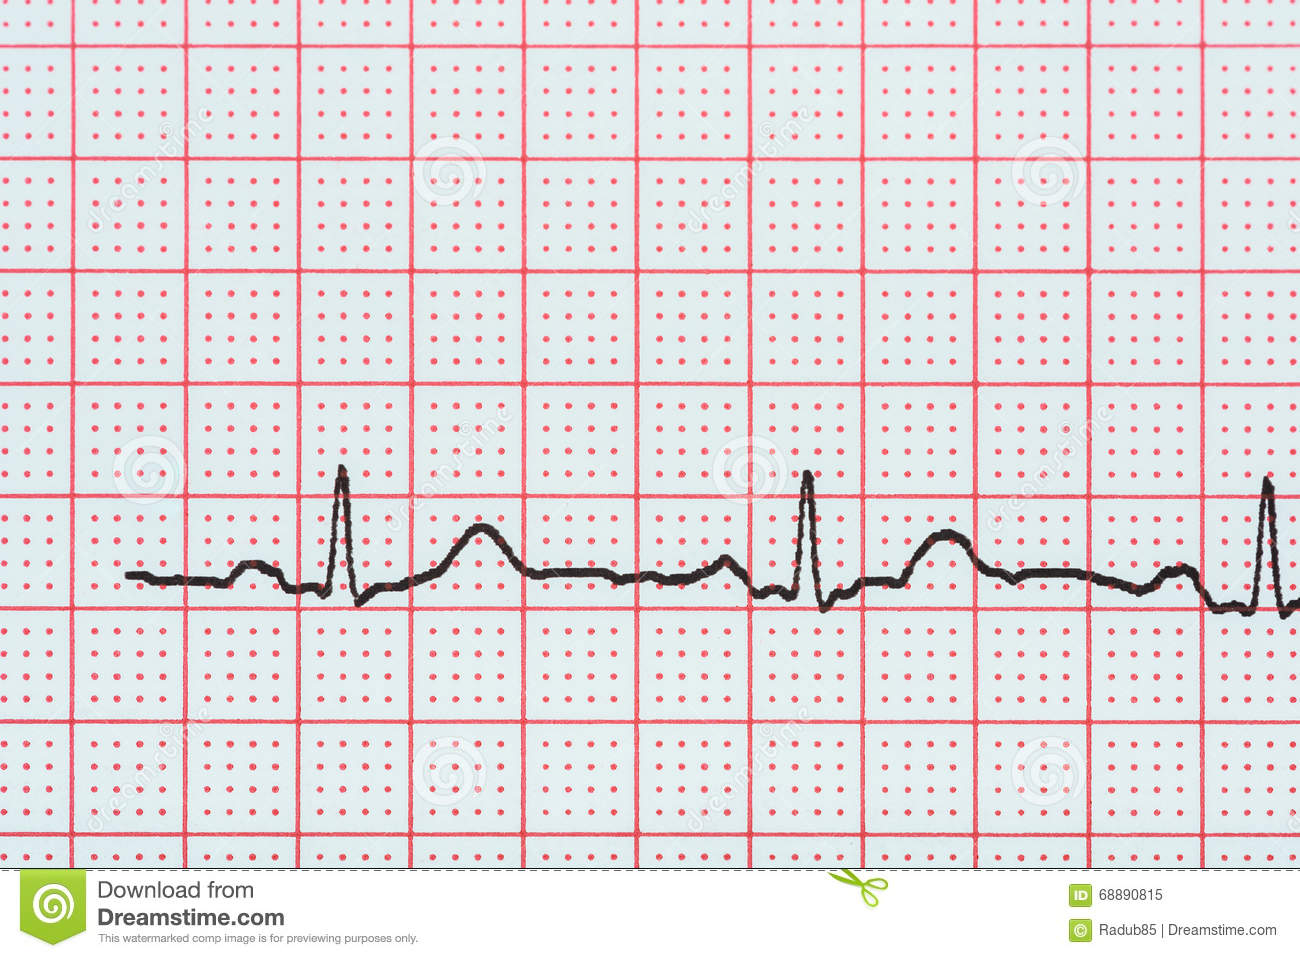 Sinus Heart Rhythm On Electrocardiogram Record Paper Showing